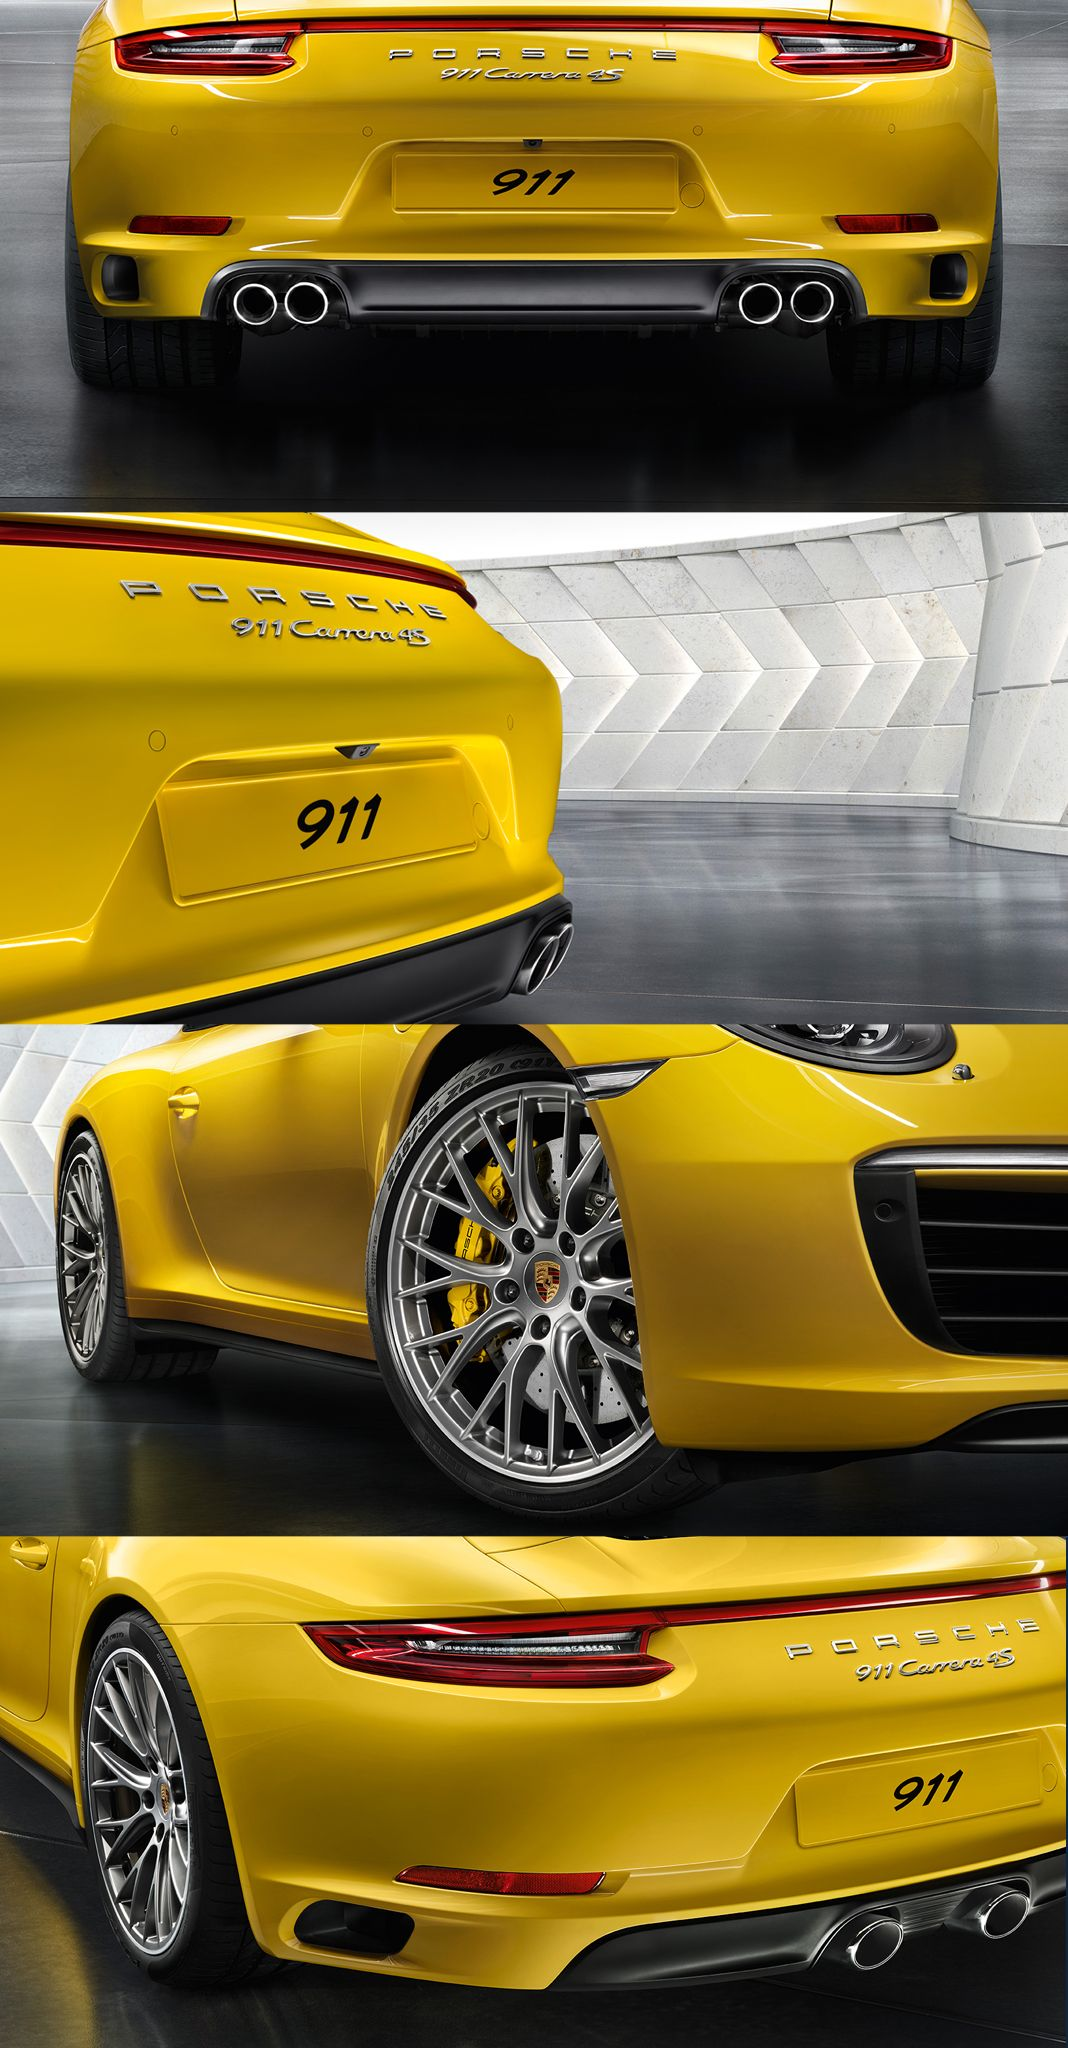 The all-wheel drive models, such as the 911 Carrera 4, not only include the numerous optical refinements of the new 911 Carrera generation but also have their own individual distinguishing characteristics as you can see in this pin.